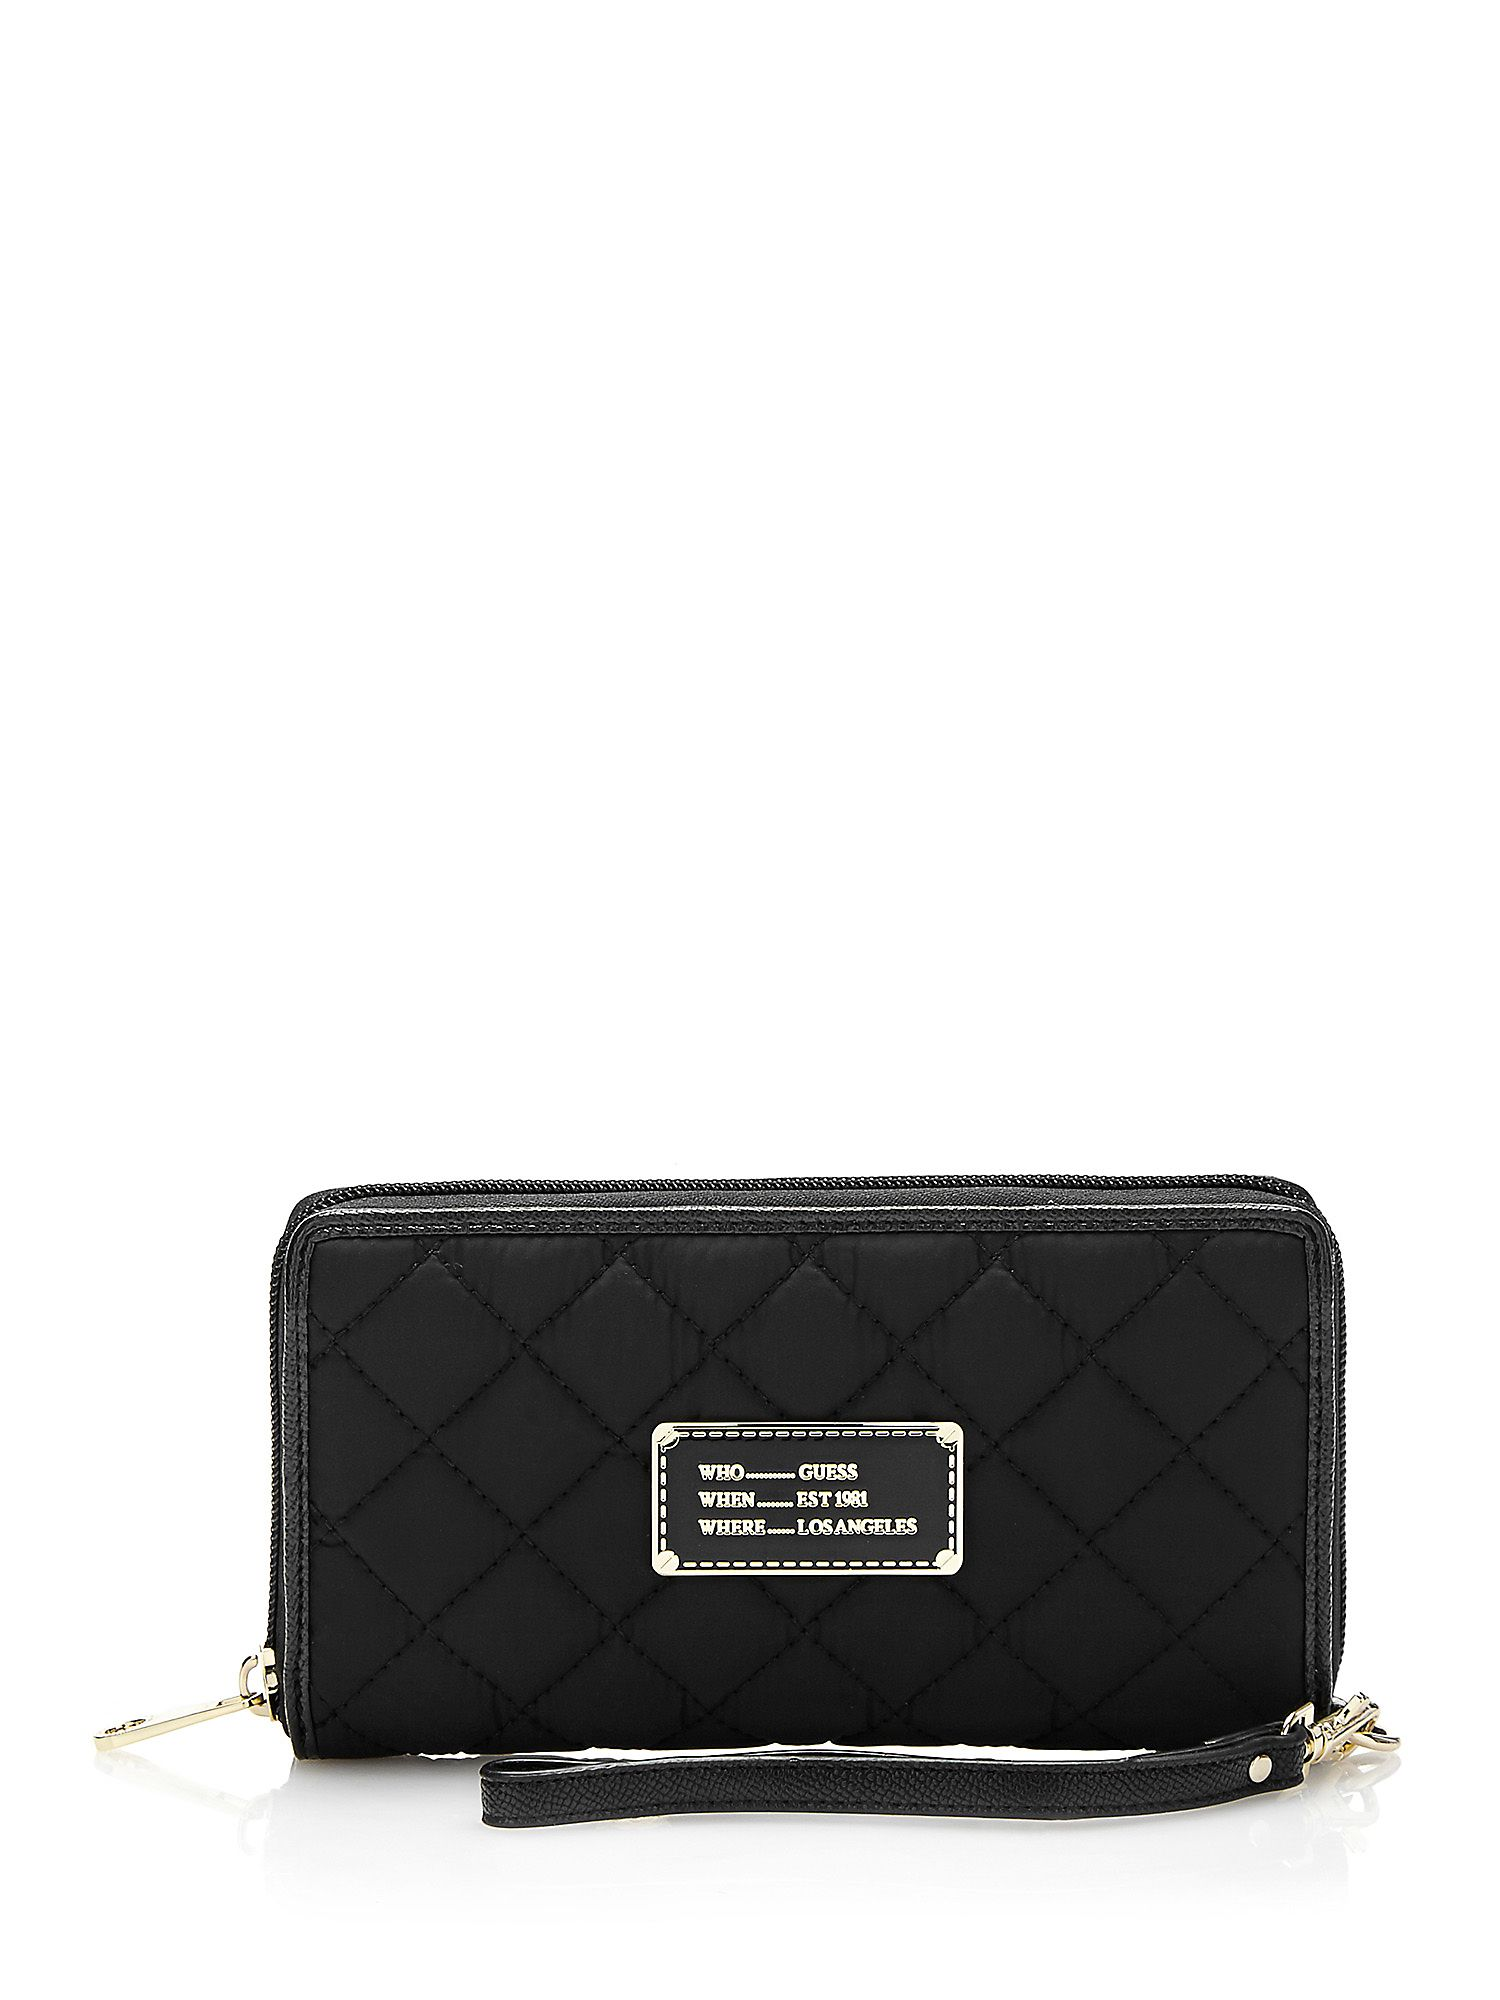 GUESS peněženka FLORENCIA QUILTED-LOOK WALLET